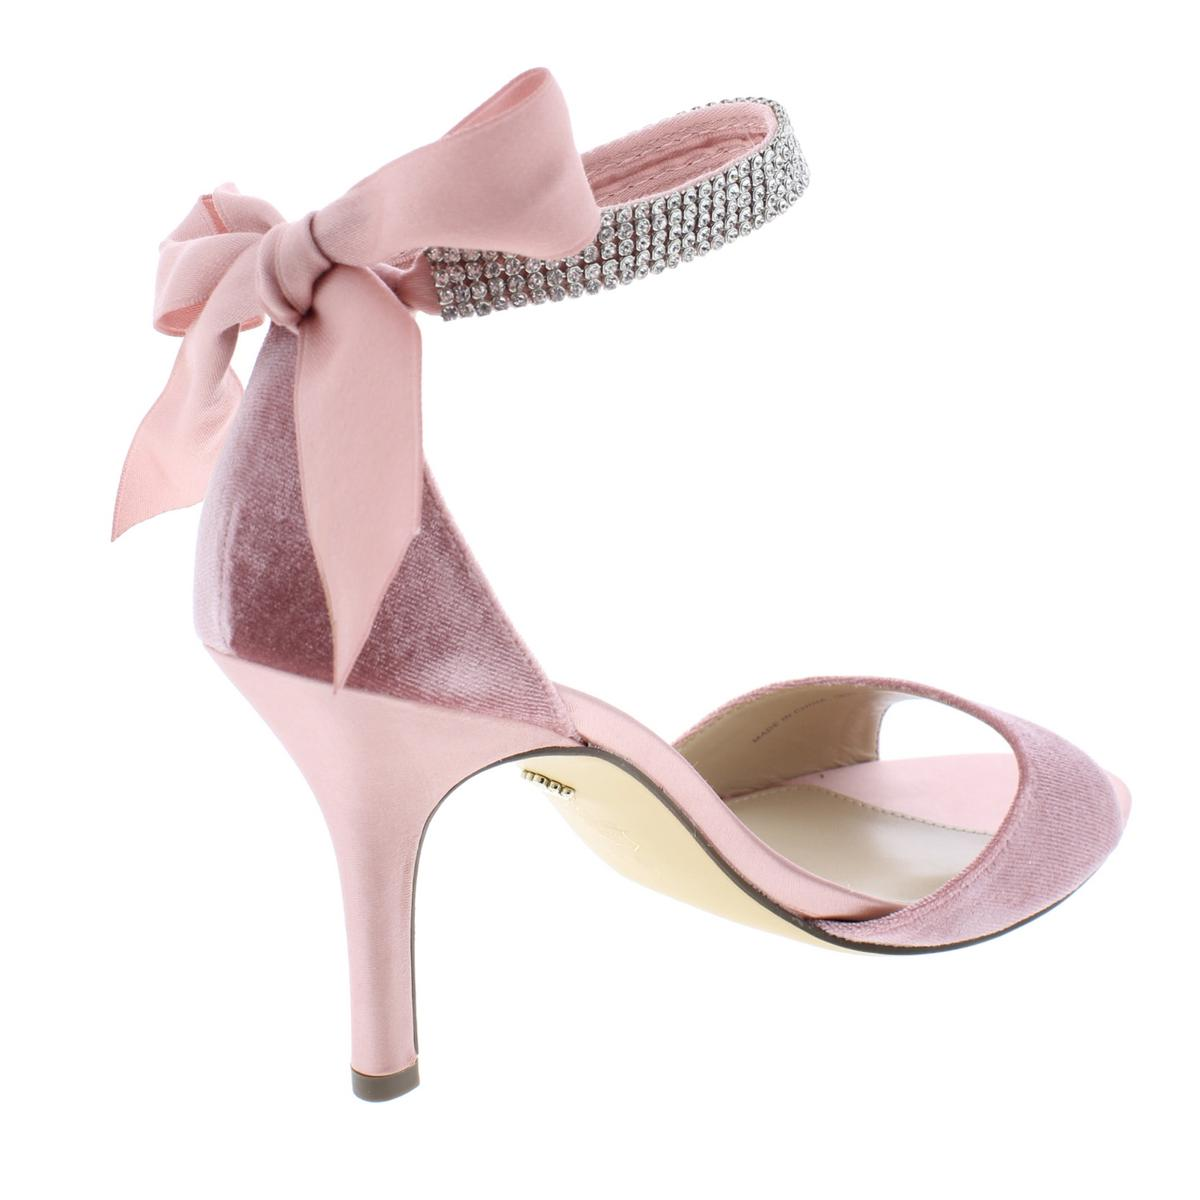 Nina-Womens-Vinnie-Pink-Satin-Evening-Heels-Shoes-8-5-Medium-B-M-BHFO-9996 thumbnail 2